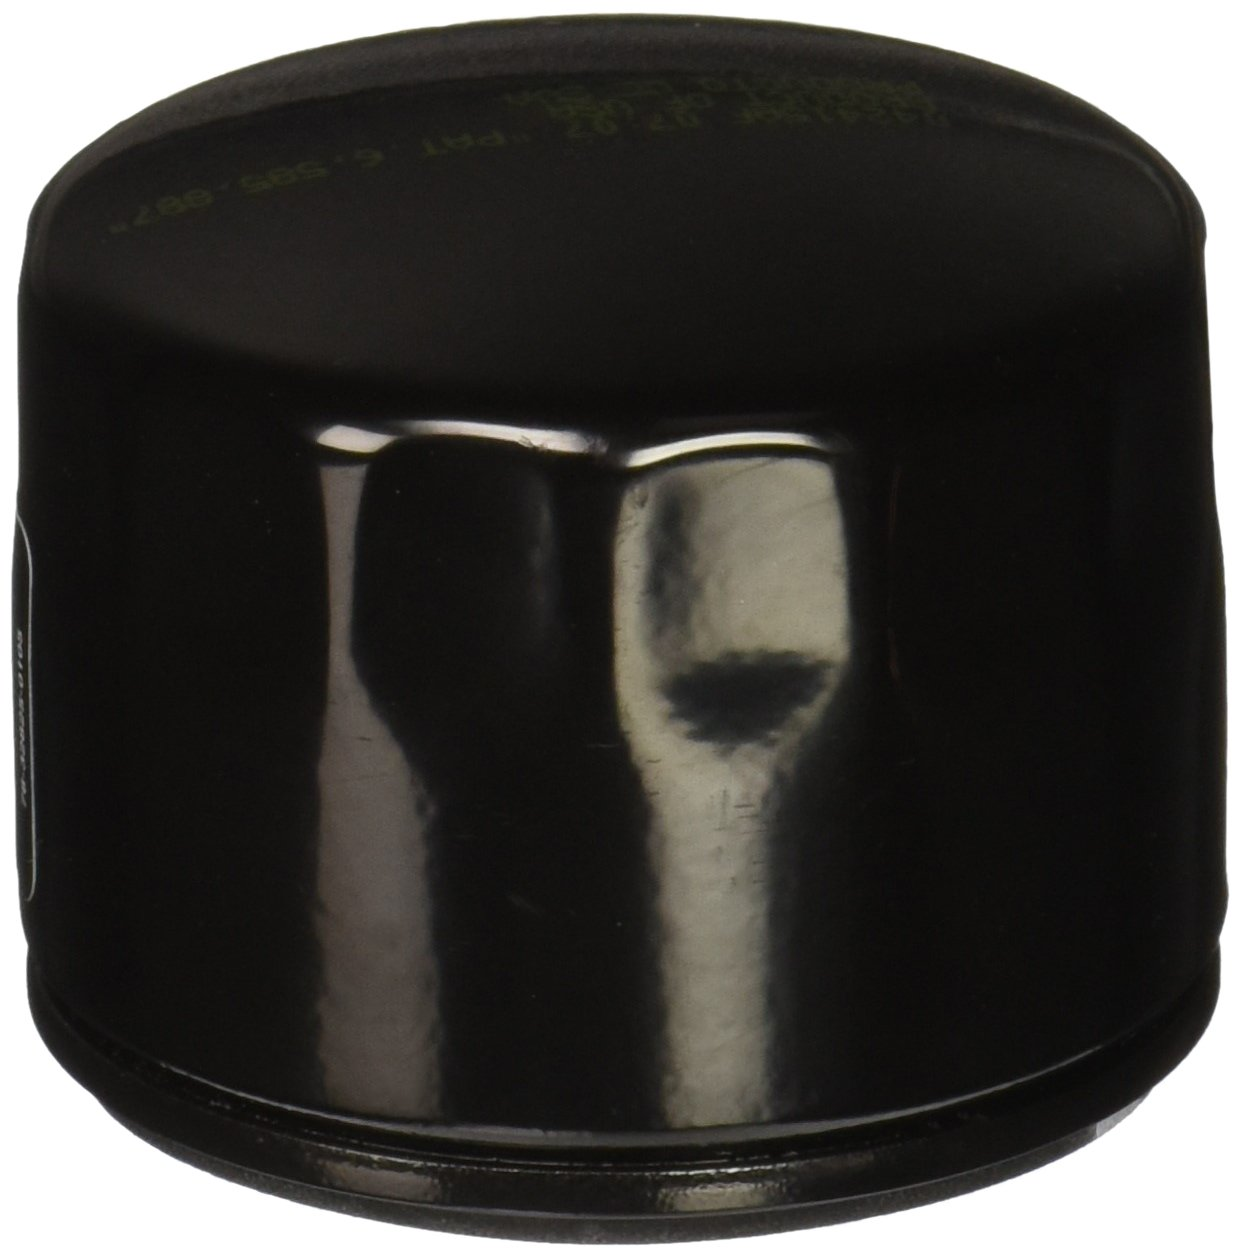 Stens 120-485 Oil Filter Replaces John Deere AM125424 Briggs & Stratton 492932S Grasshopper 100803 Tecumseh 36563 Husqvarna 531 30 73-89 Kawasaki 49065-7007